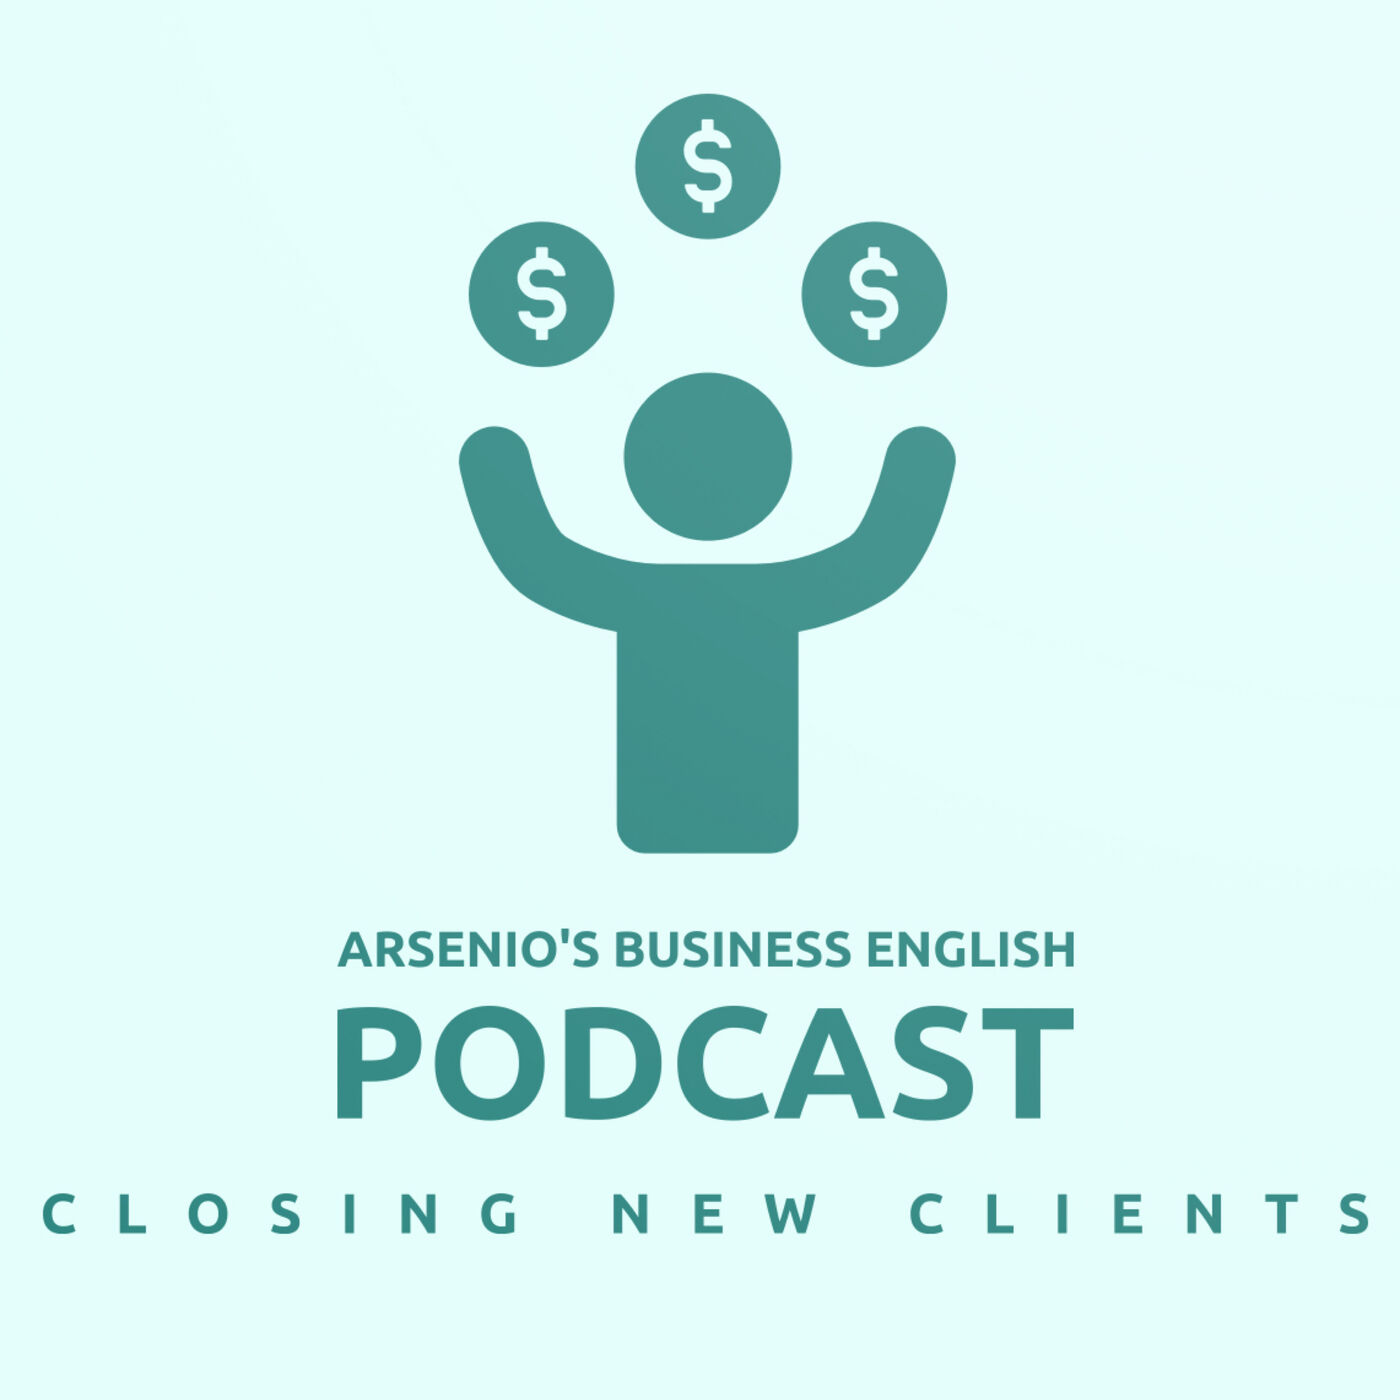 Arsenio's Business English Podcast | Season 6 | Sales | Closing New Clients